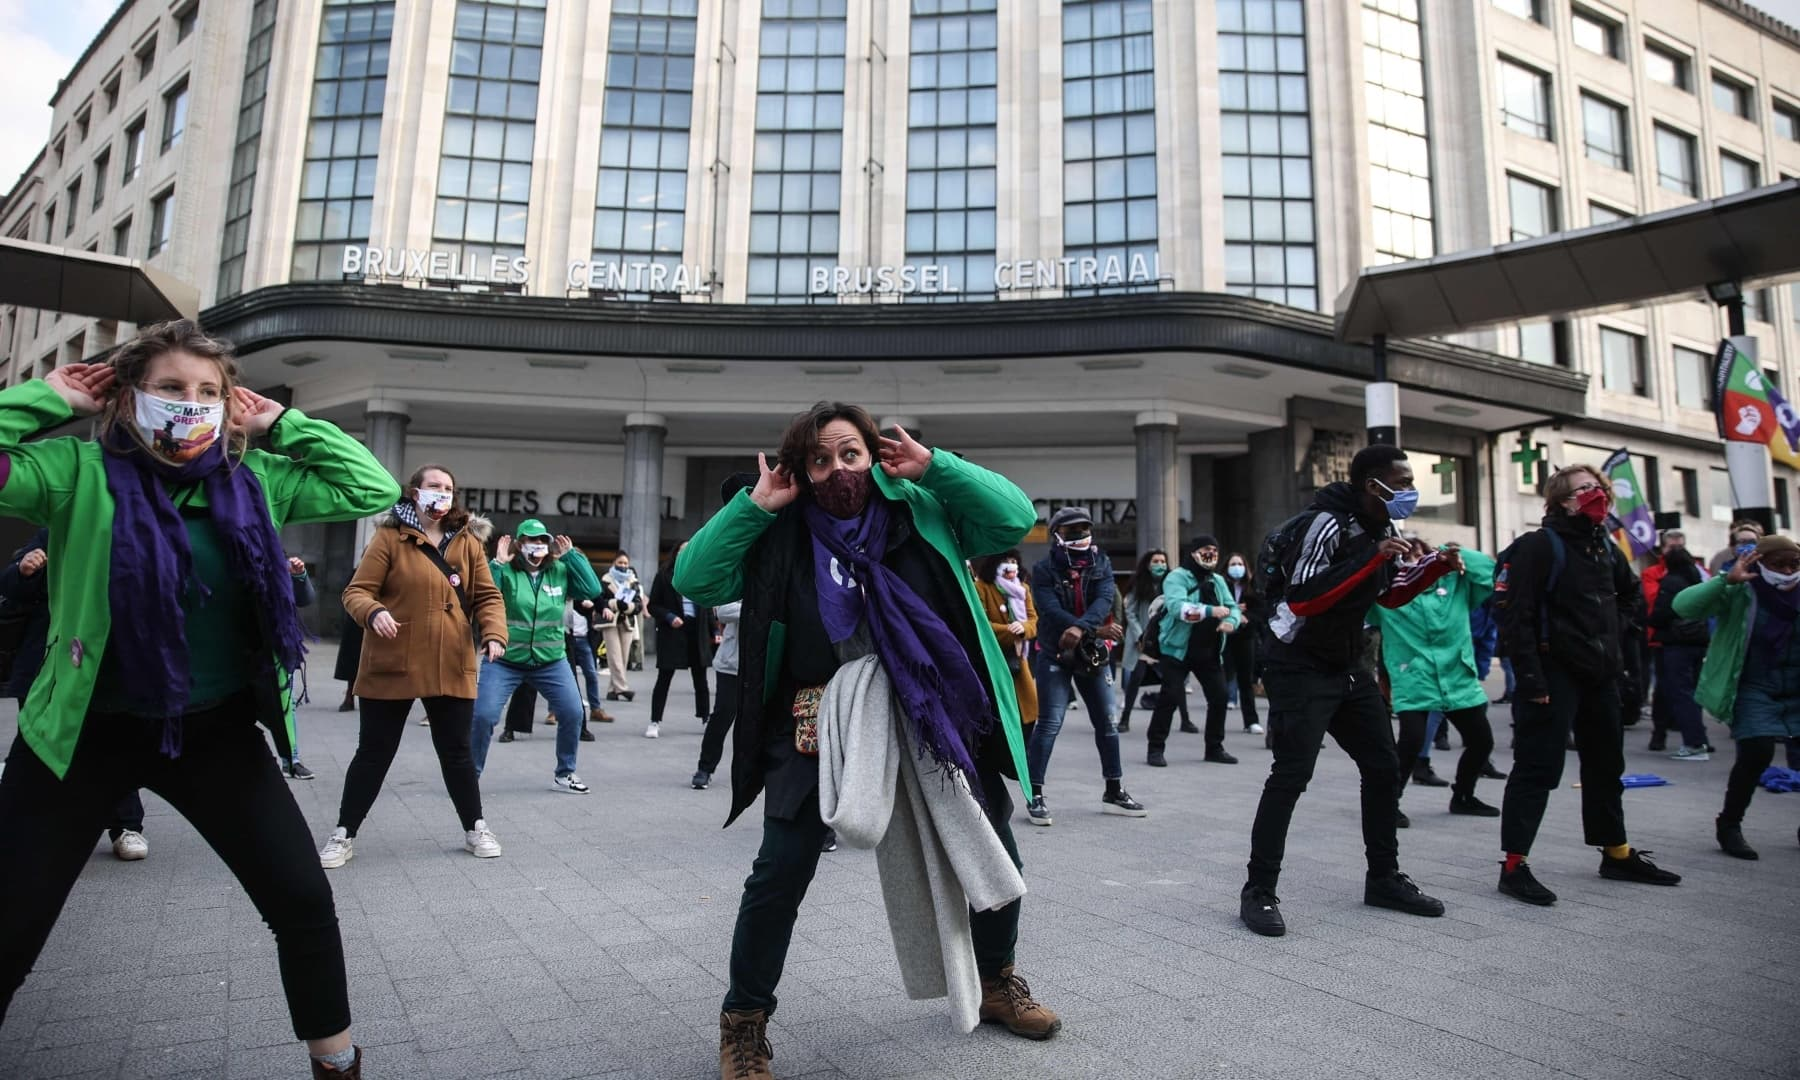 Activists of the CNE workers union participate in a haka for women on the International Women's Day at Brussels' Central Station on March 8. — AFP